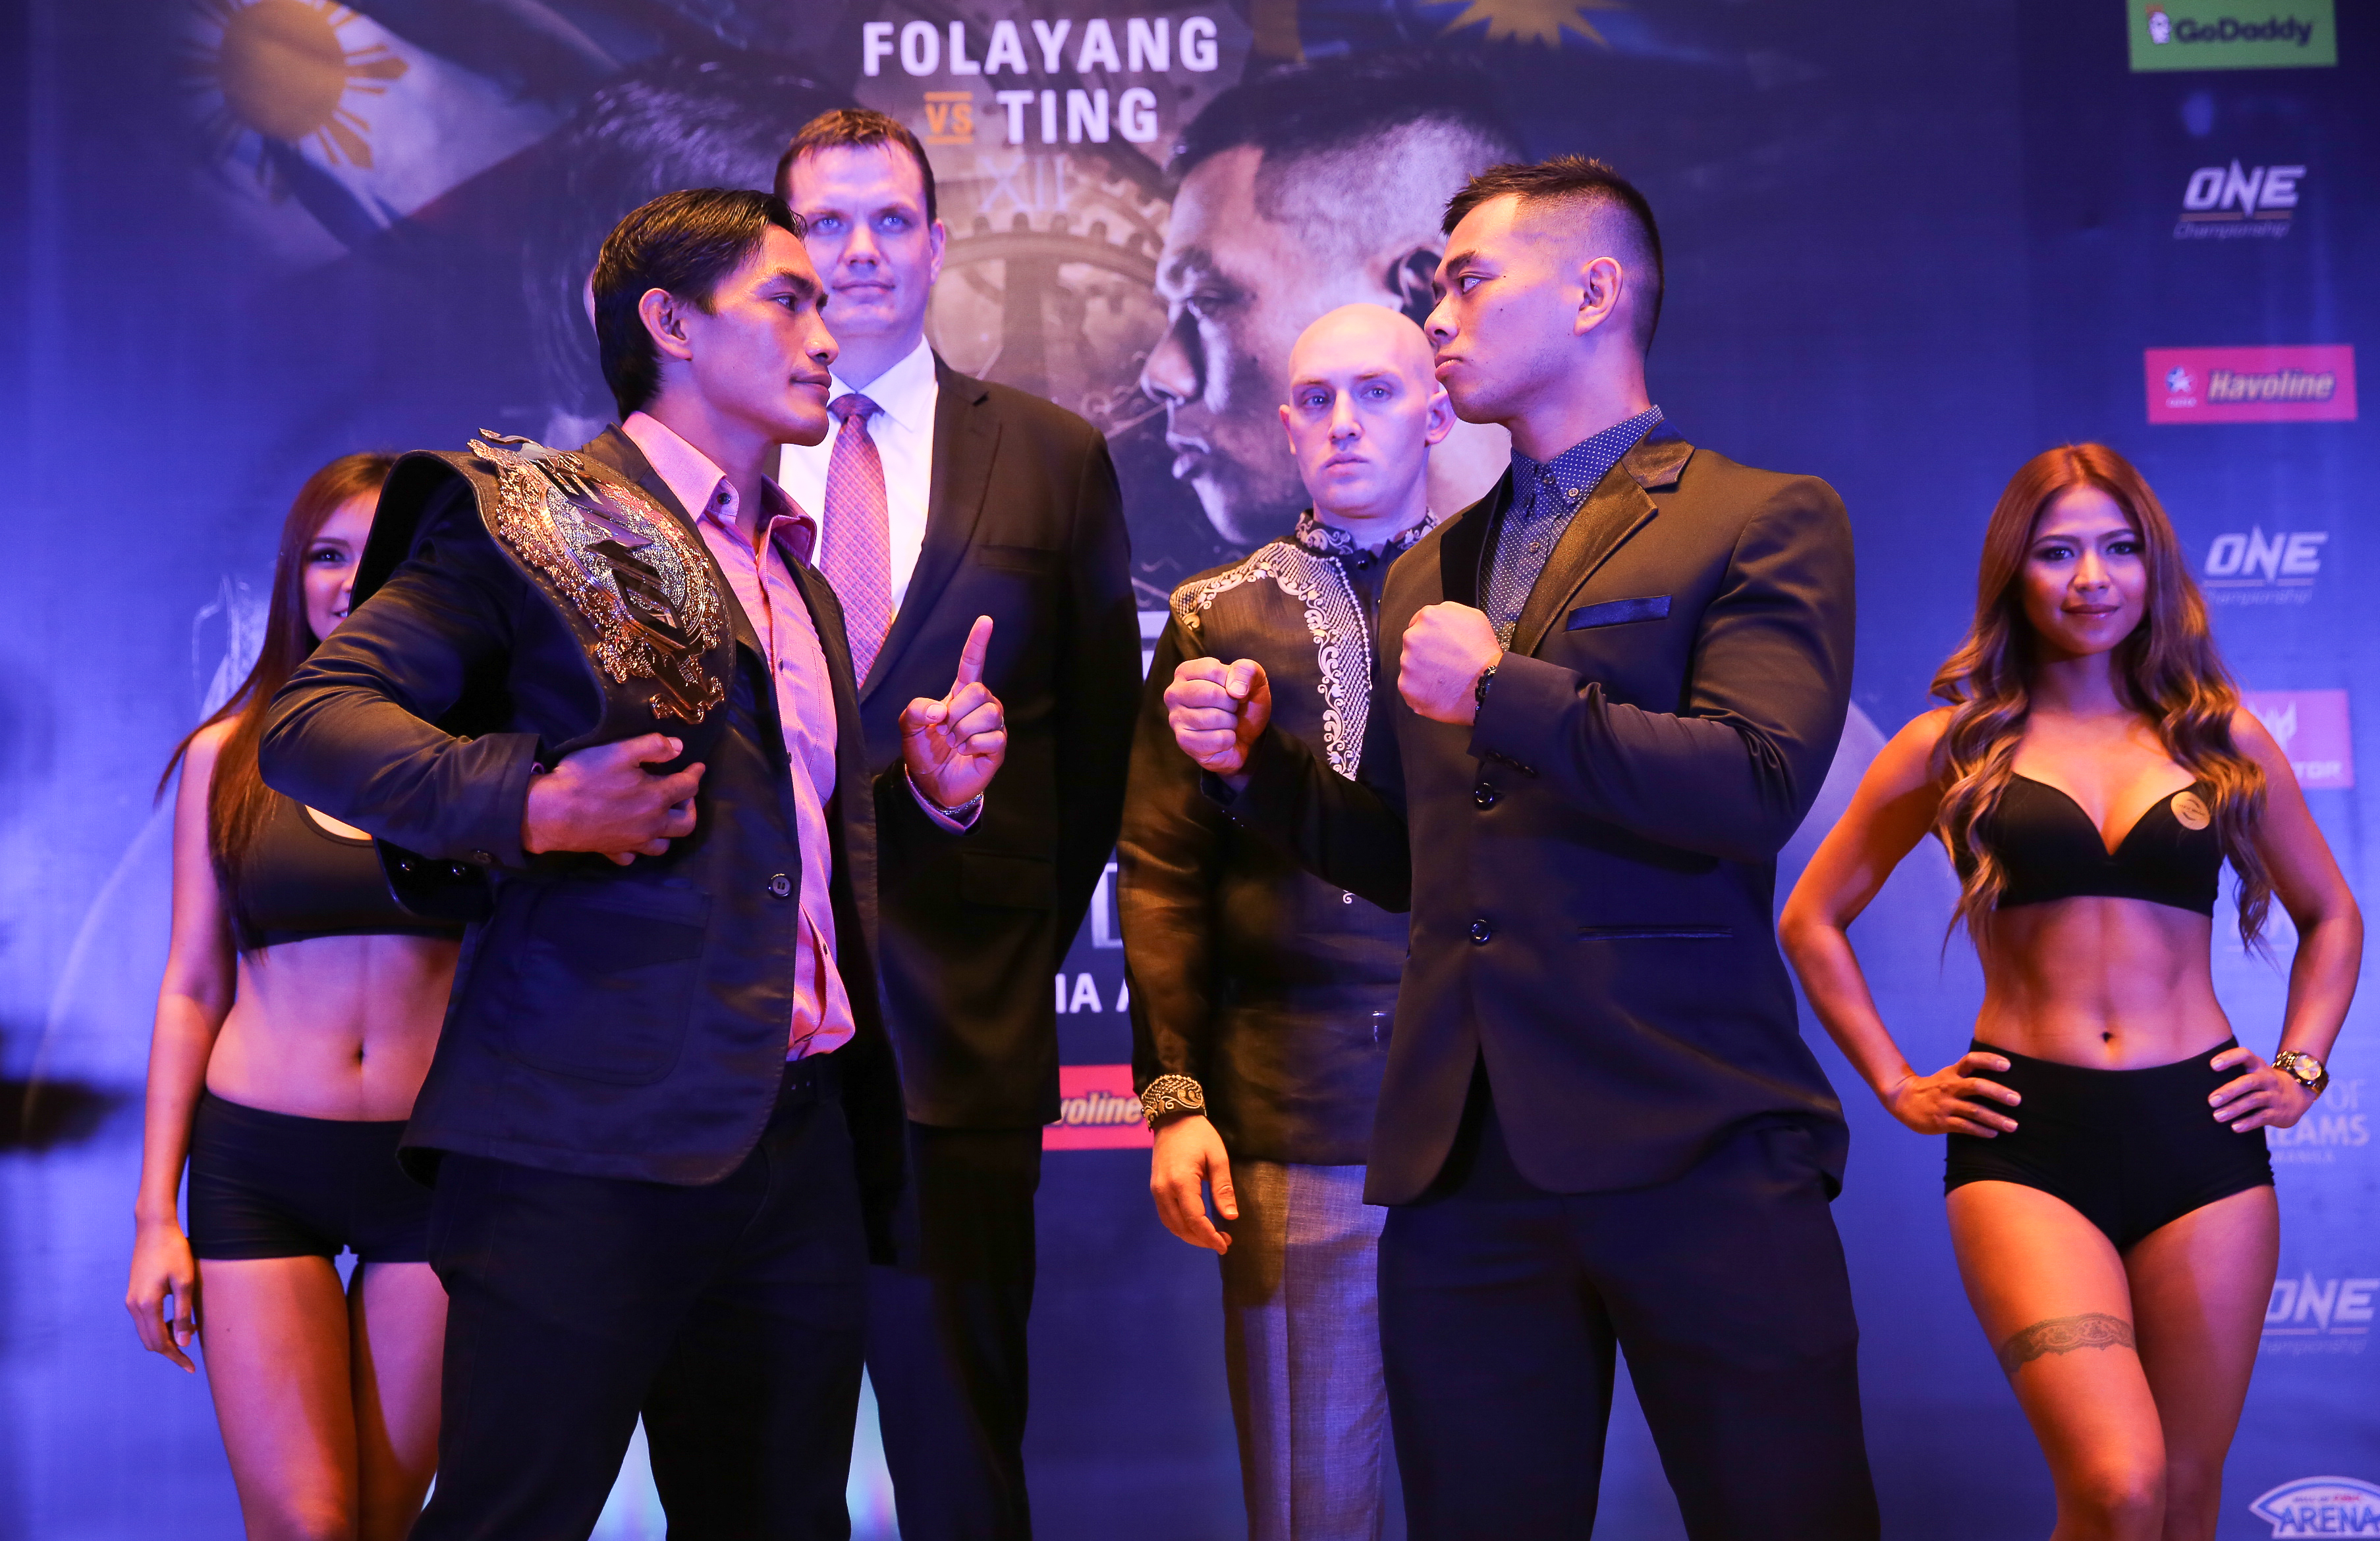 MMA: Folayang retains ONE lightweight title with unanimous decision win